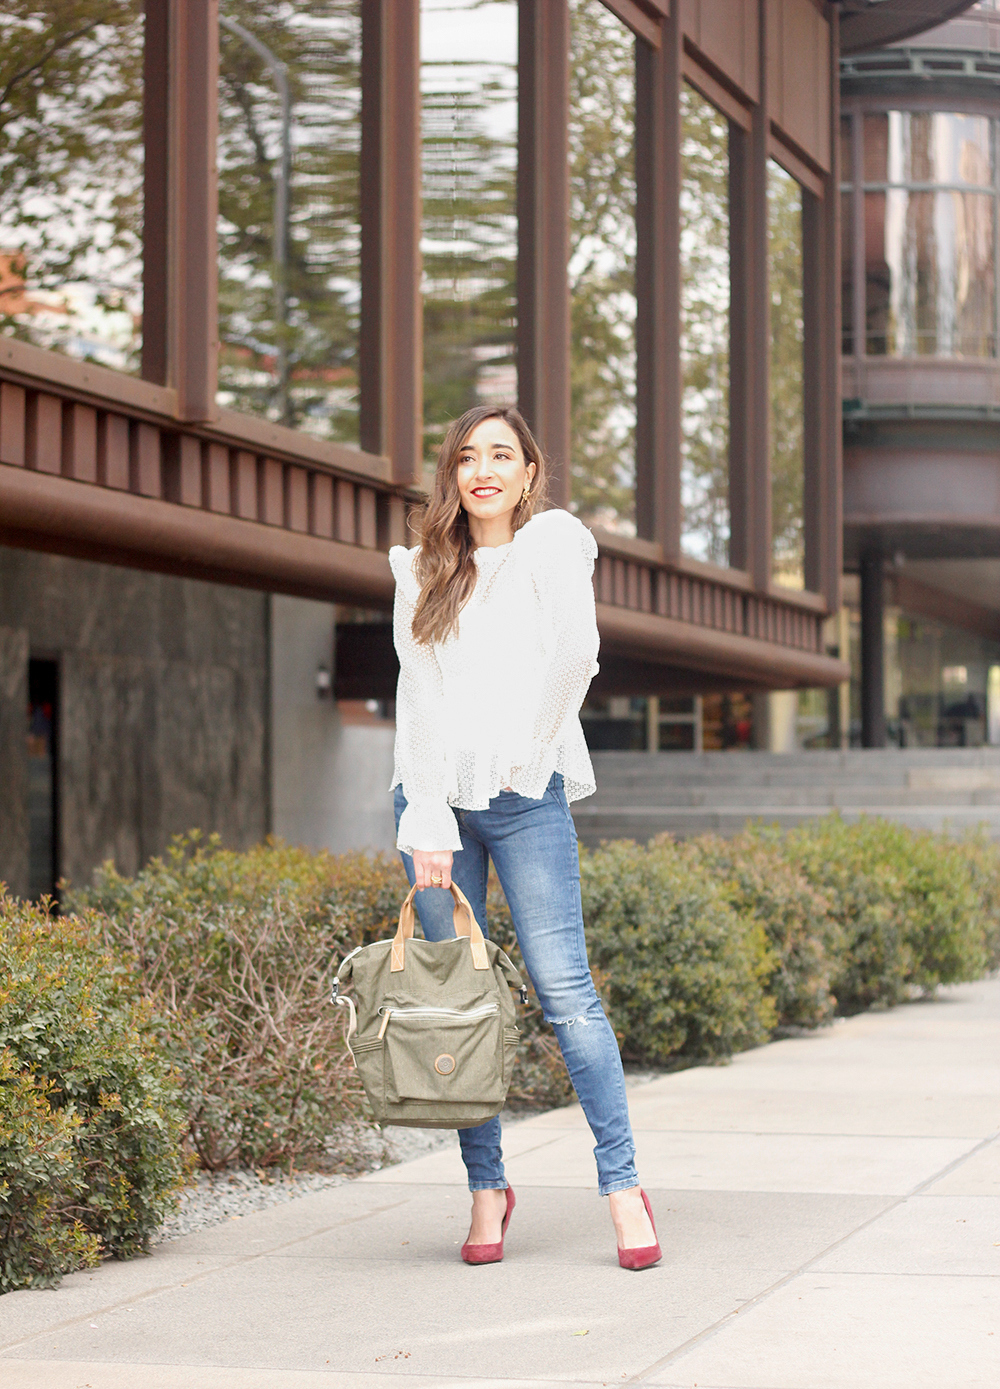 kipling backpack transformation collection khaki white lace blouse casual street style casual outfit 20197